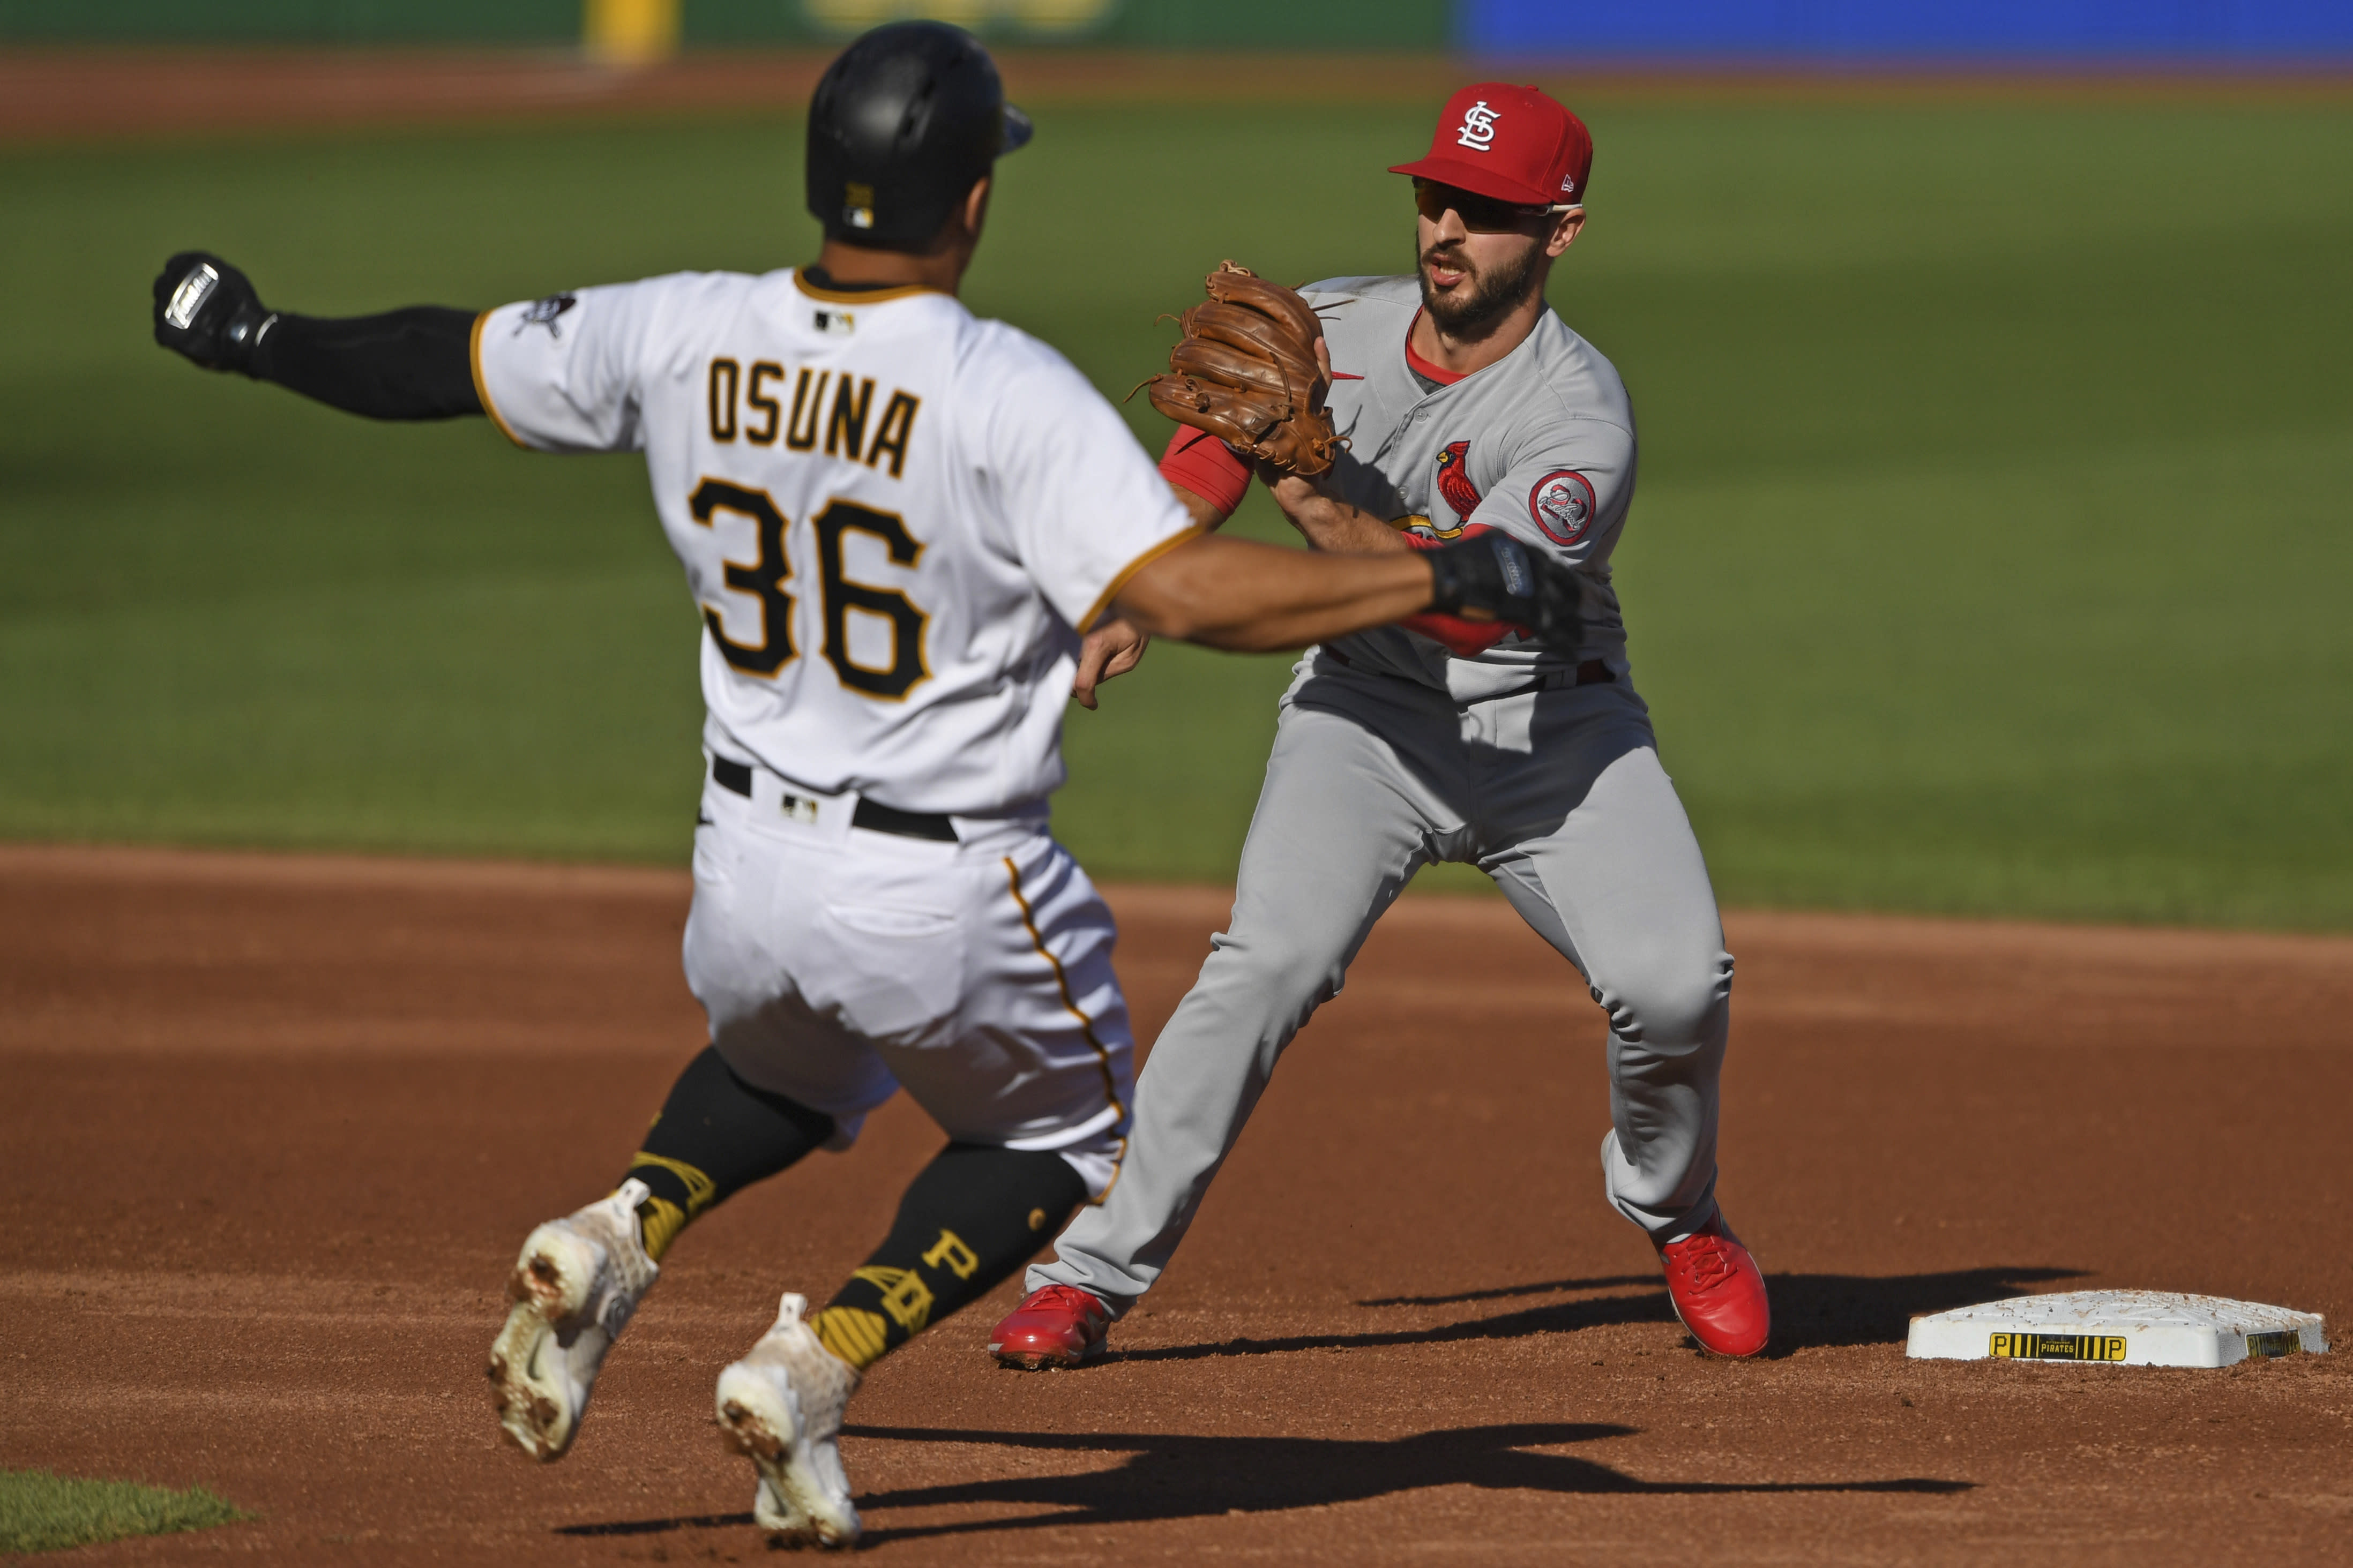 St. Louis Cardinals' Paul DeJong prepares to tag out Pittsburgh Pirates' Jose Osuna during the third inning of a baseball game, Sunday, Sept. 20, 2020, in Pittsburgh. (AP Photo/David Dermer) Pennsylvania